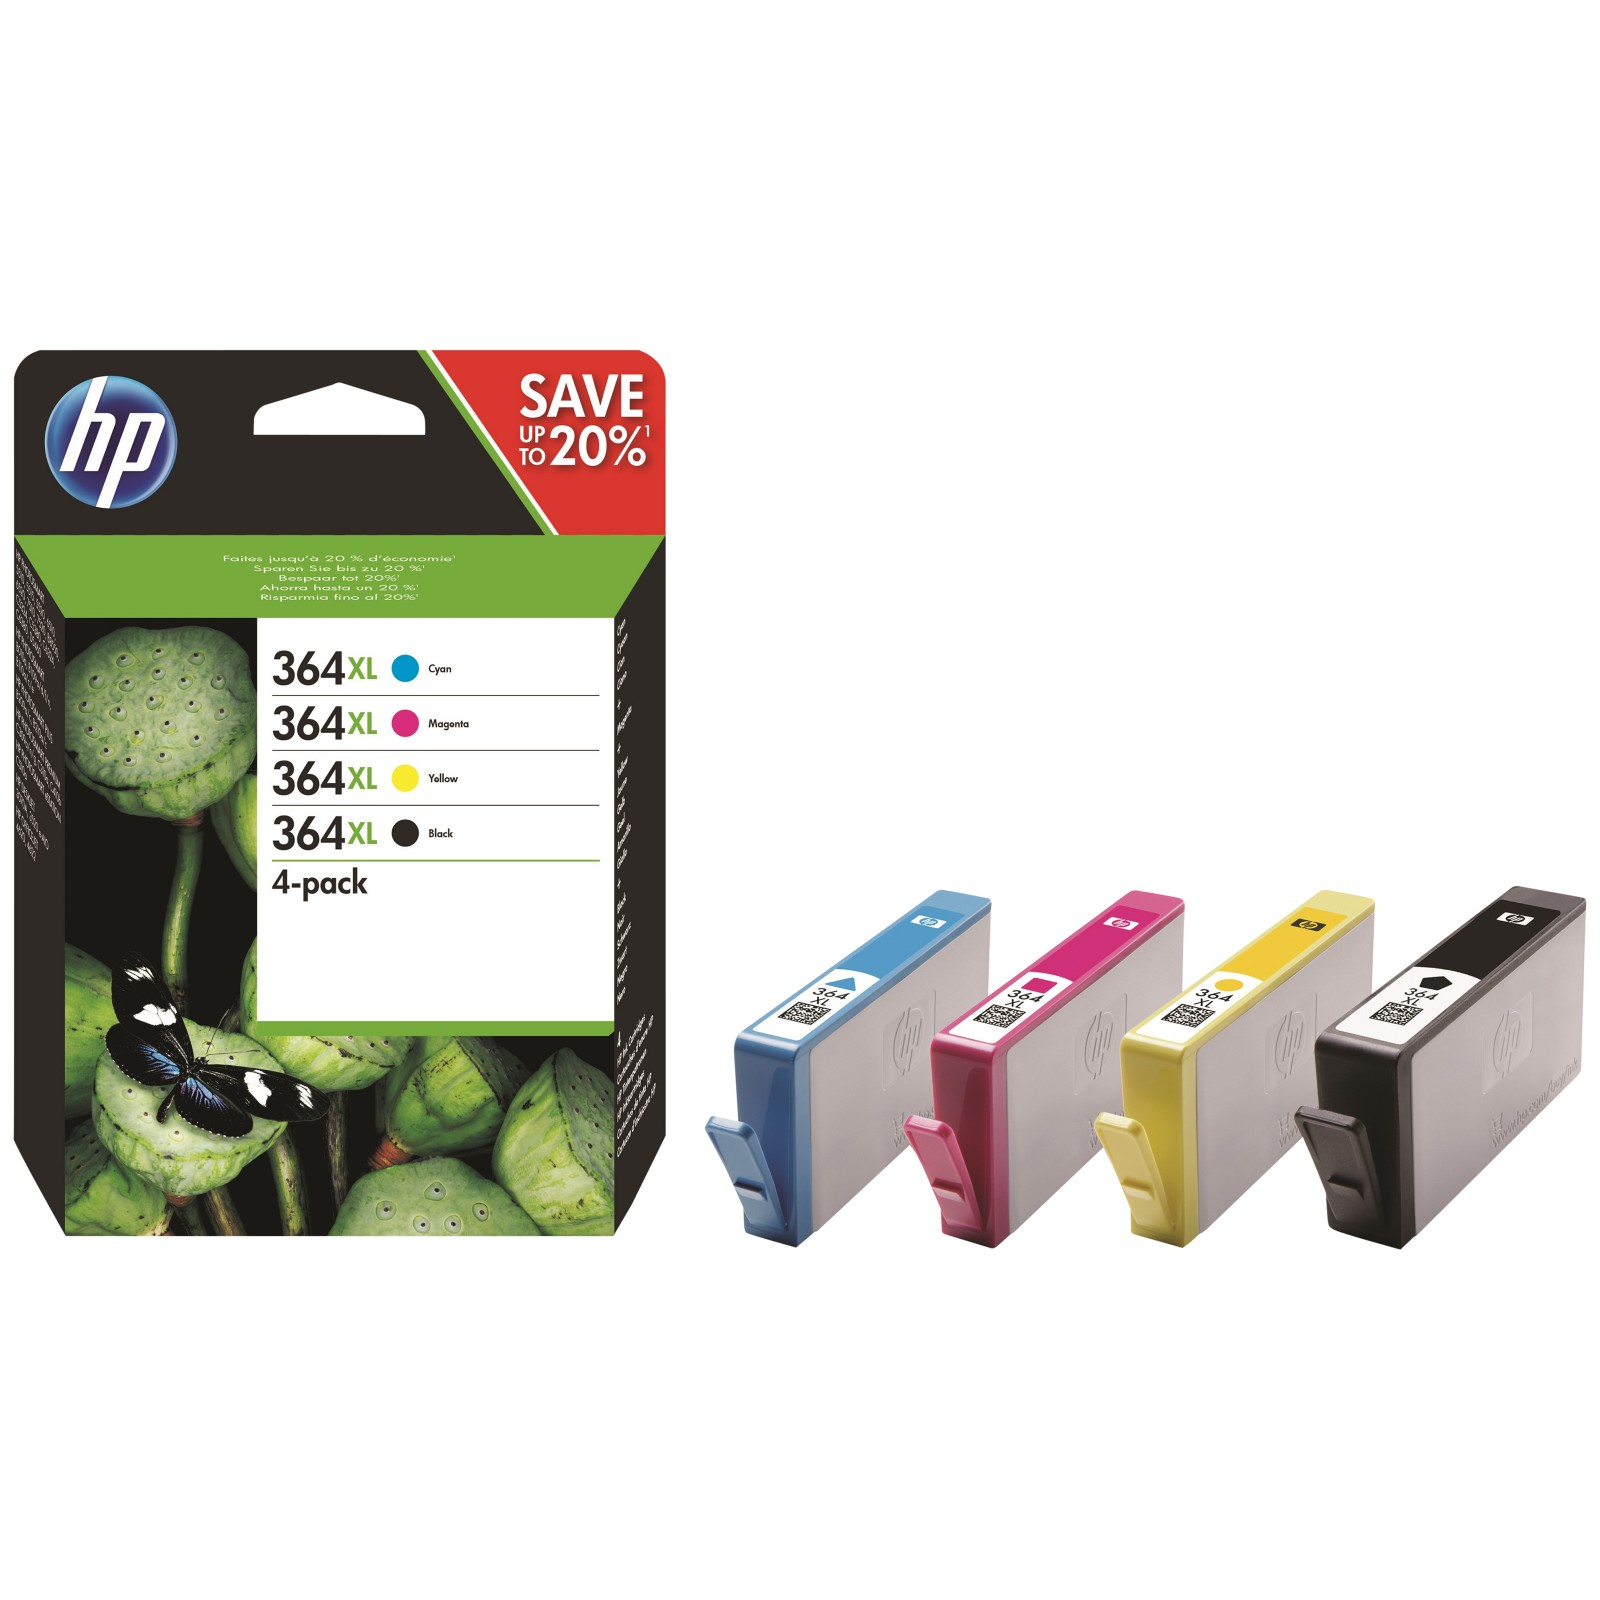 hp 364 xl ink cartridge multipack pack of 4 review best buy review. Black Bedroom Furniture Sets. Home Design Ideas